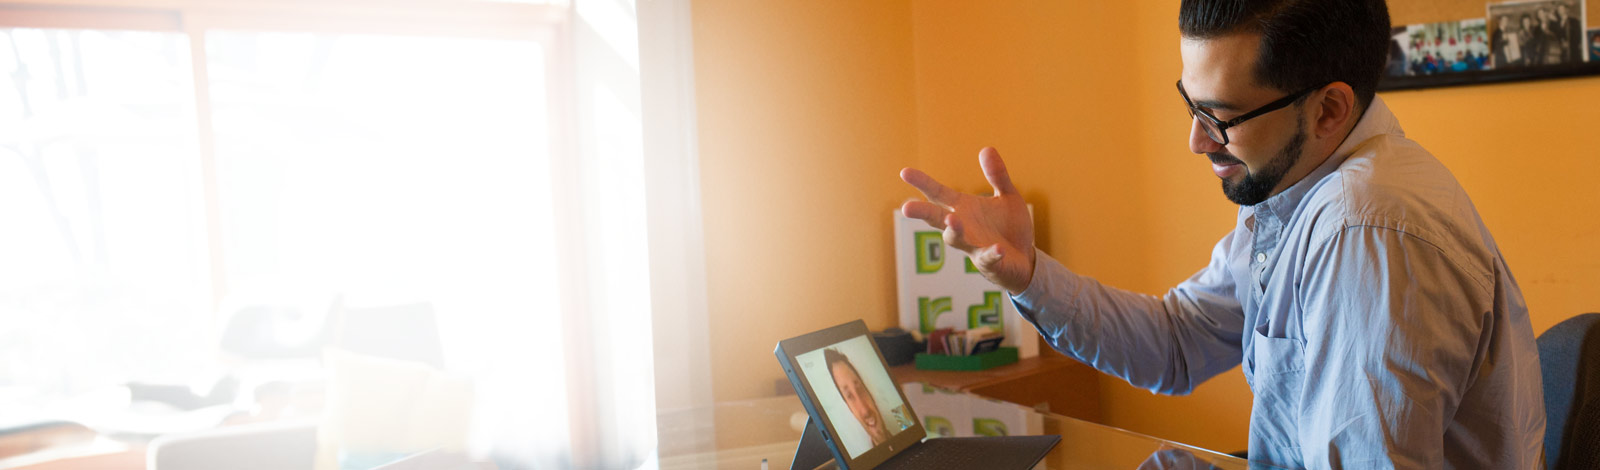 A man at a desk video conferencing on a tablet using Office 365.